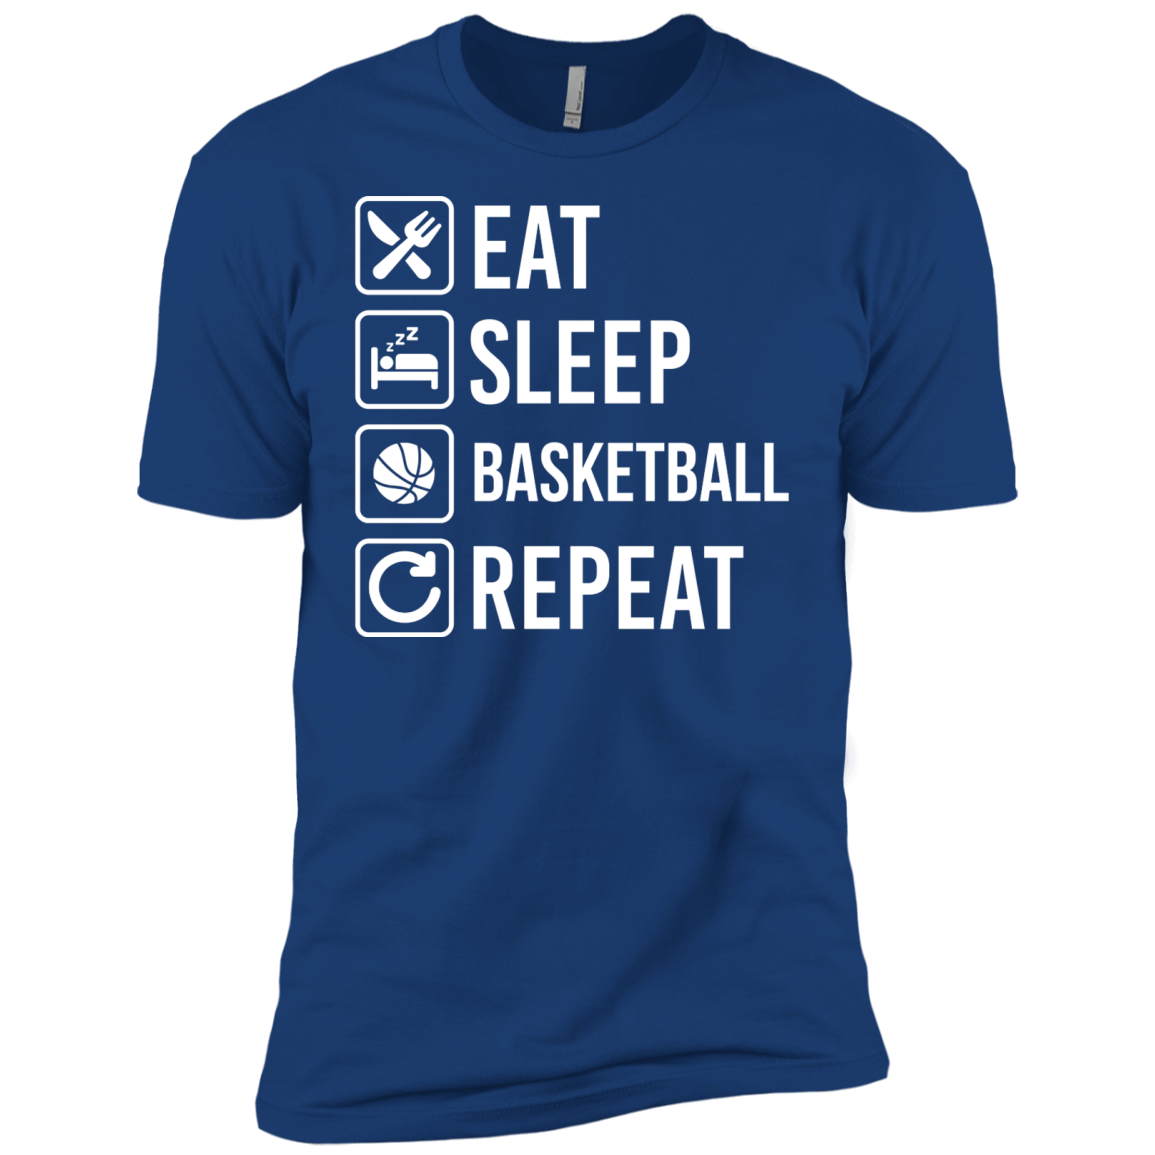 Basketball Eat Sleep Repeat T-Shirts and Hoodie - The Sun Cat